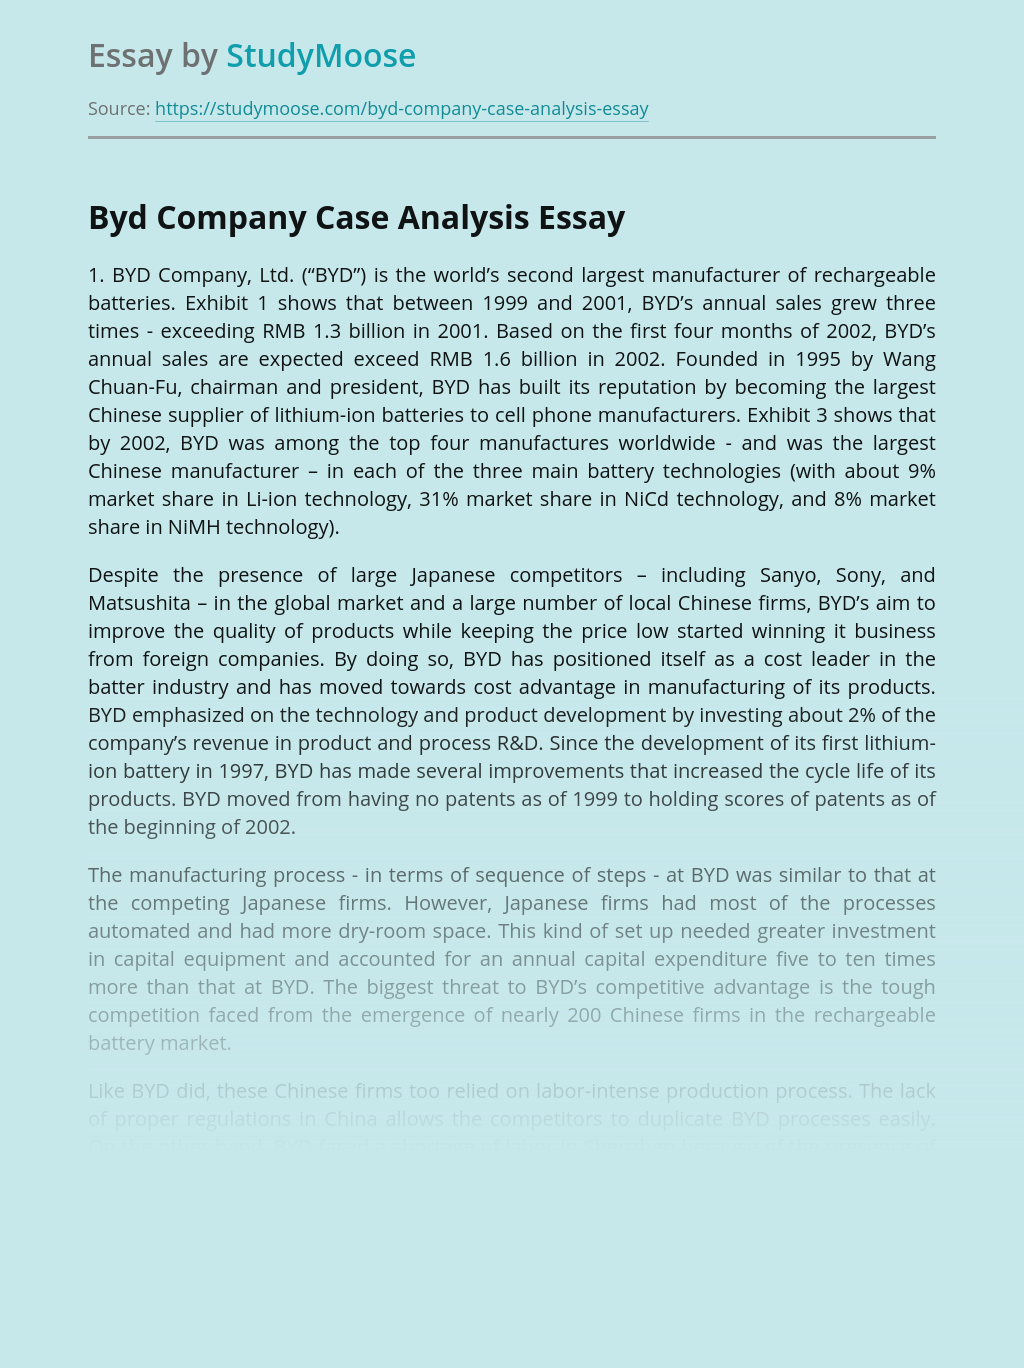 Byd Company Case Analysis